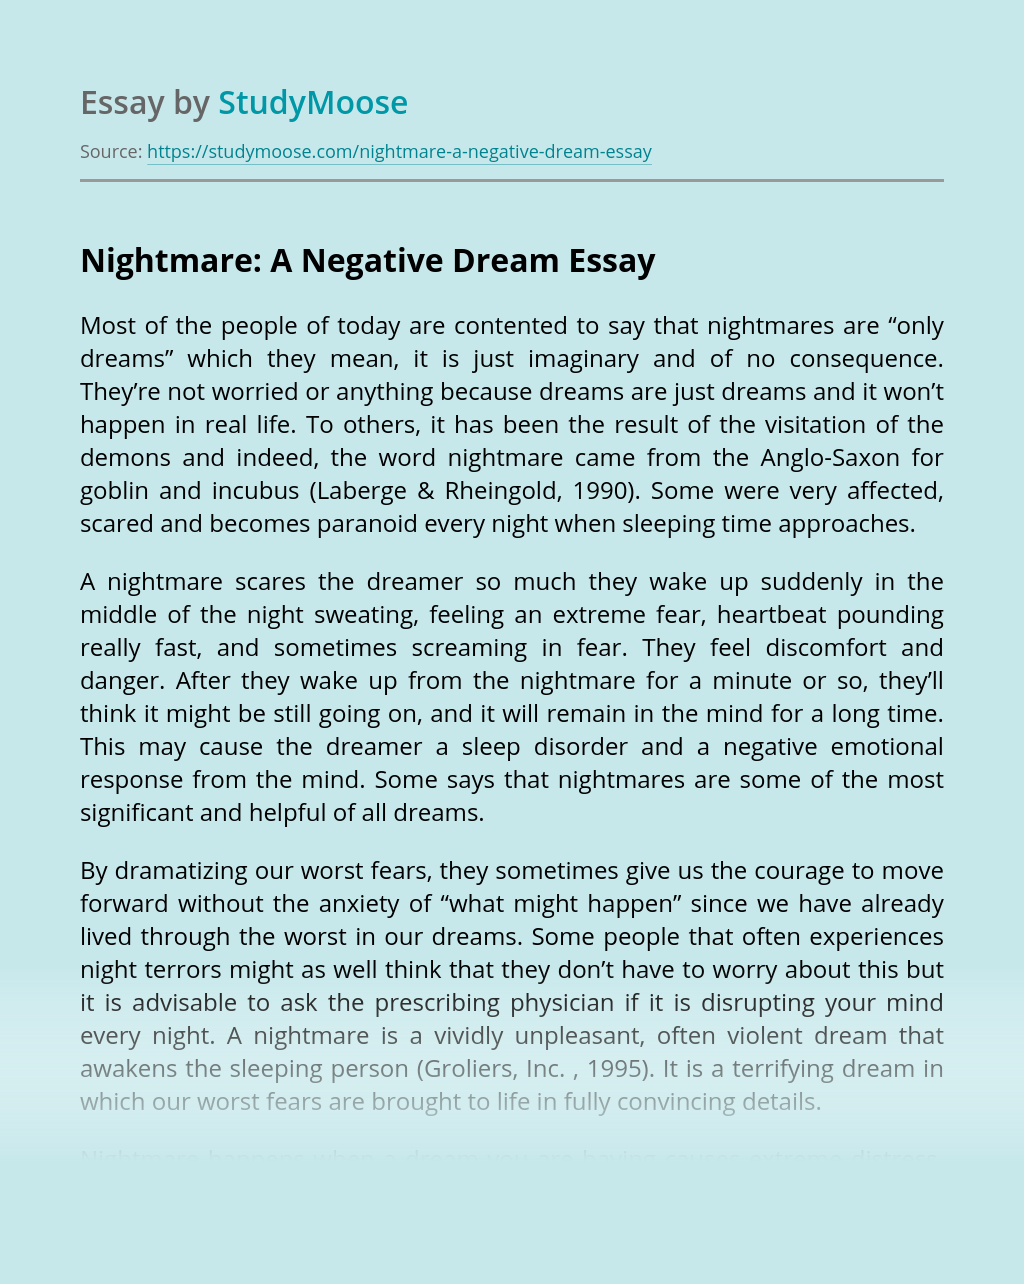 Nightmare: A Negative Dream